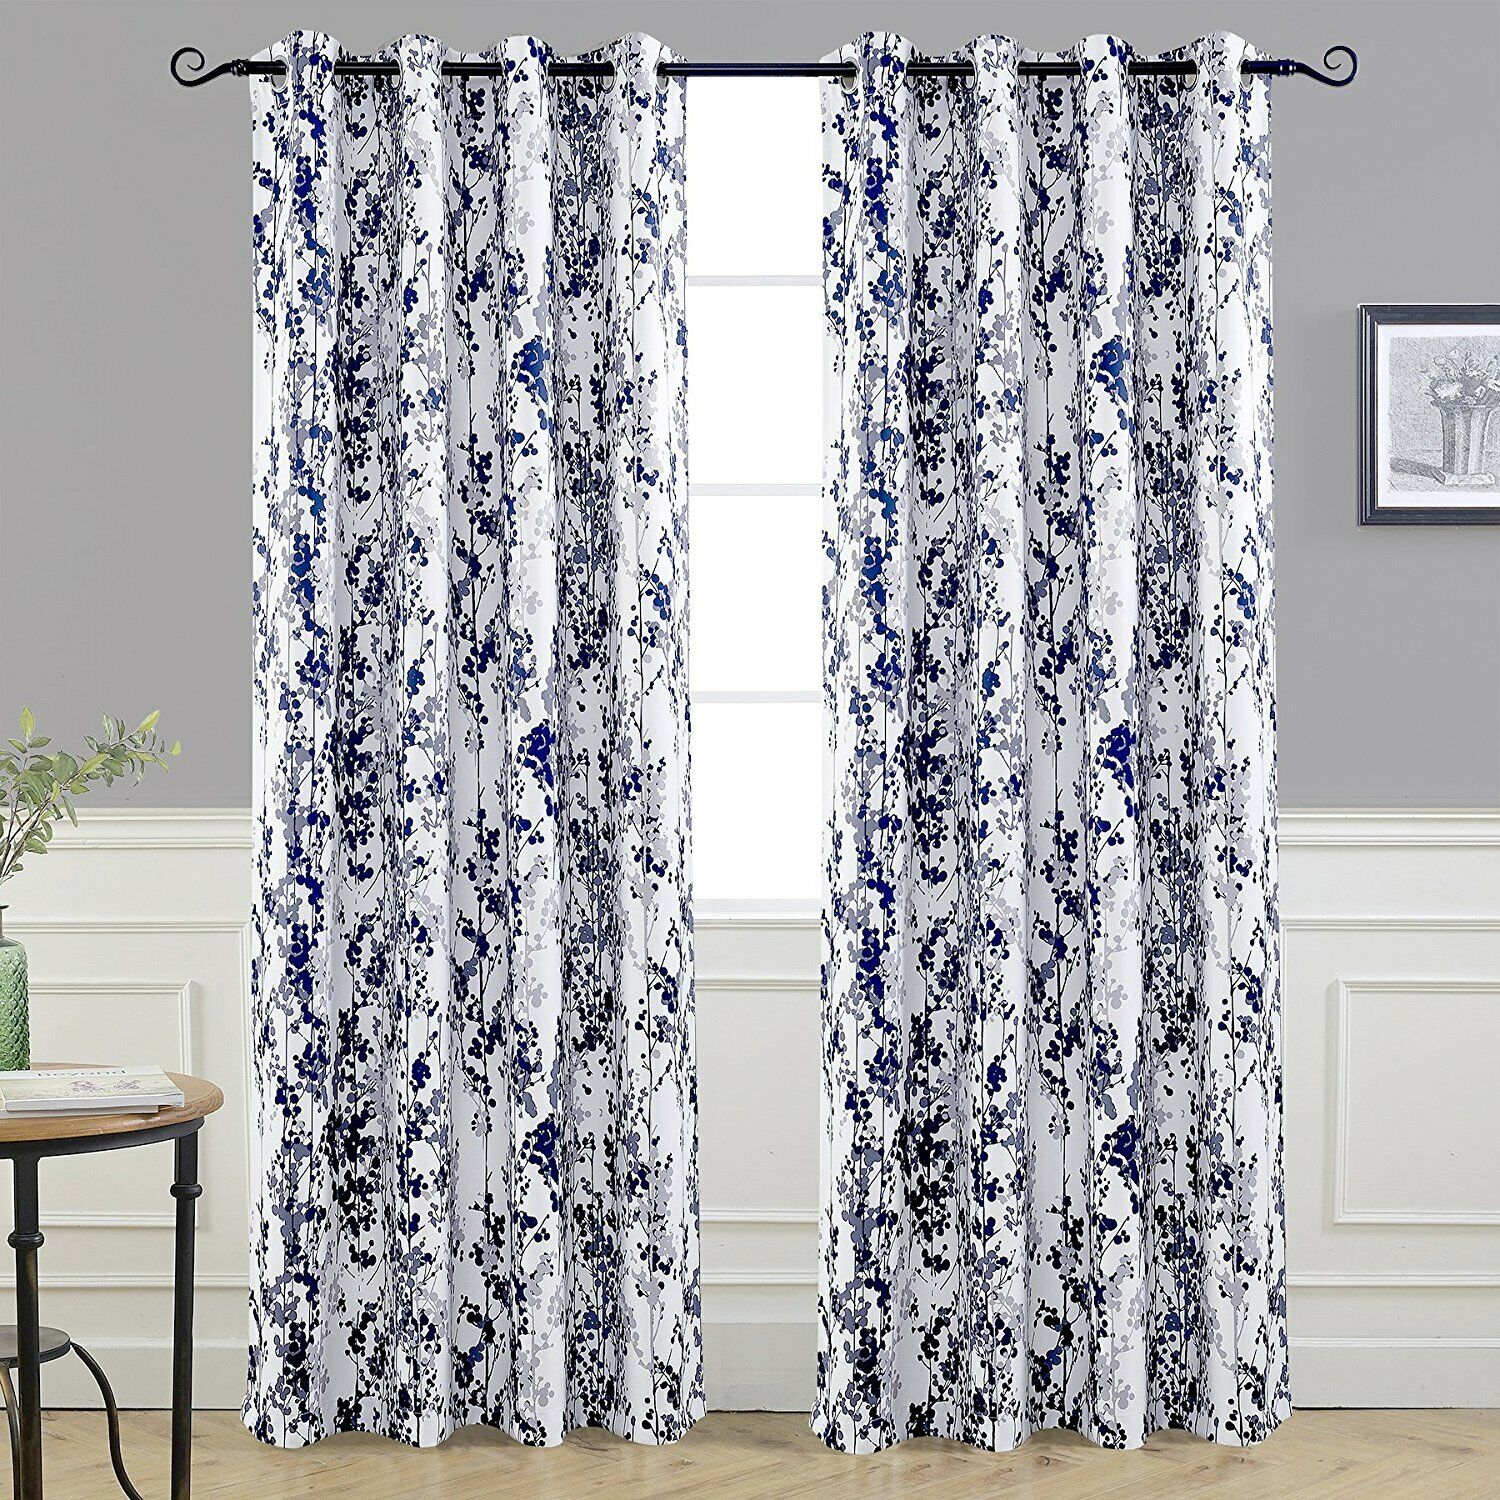 Ehs Sabrina Blue White Floral 36 Tier And Valance Set Kitchen Curtains For Sale Ebay